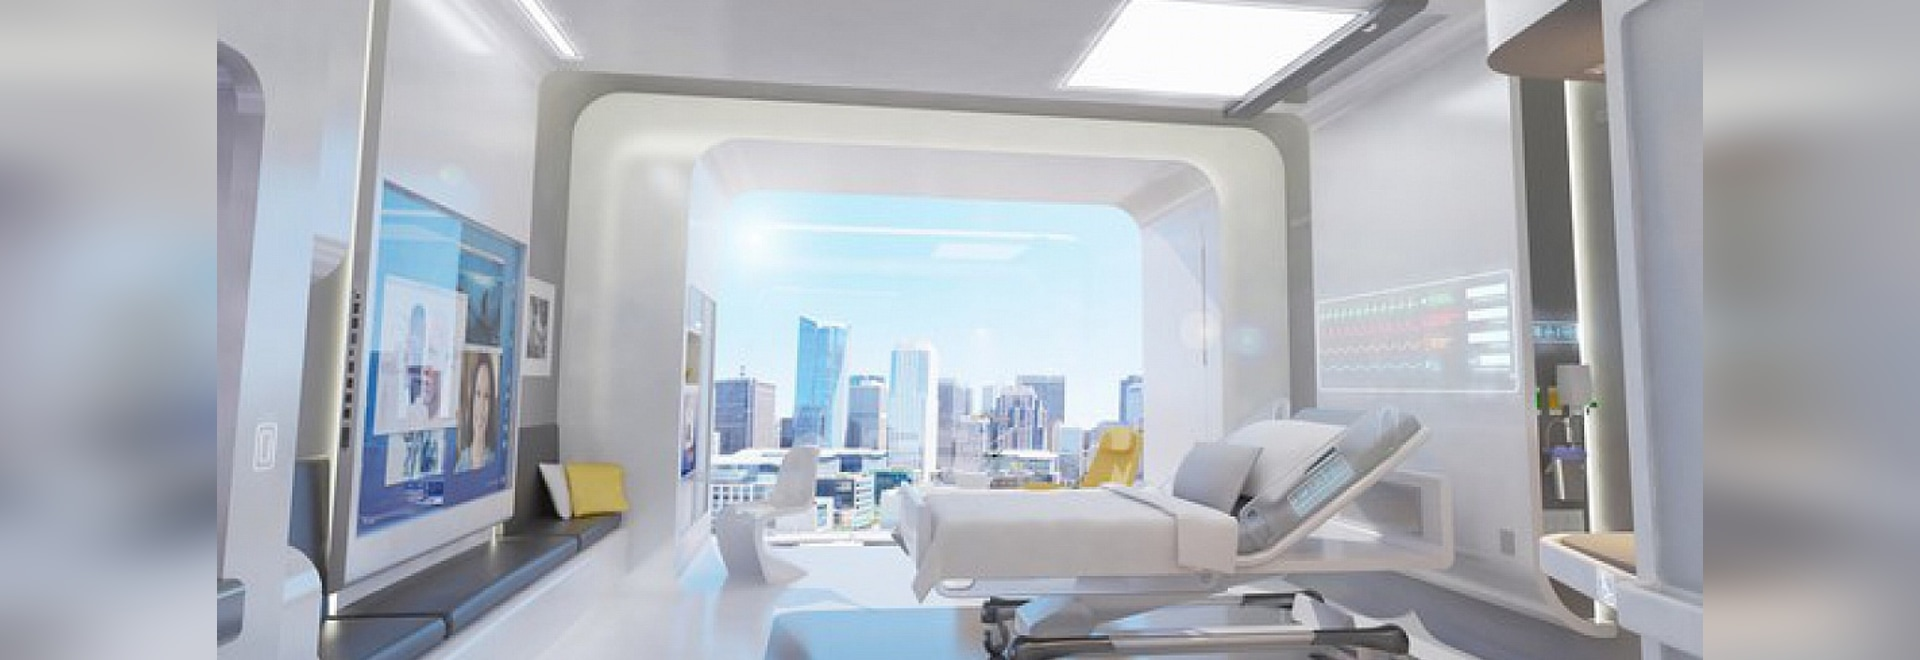 OPED. The Connected Hospital